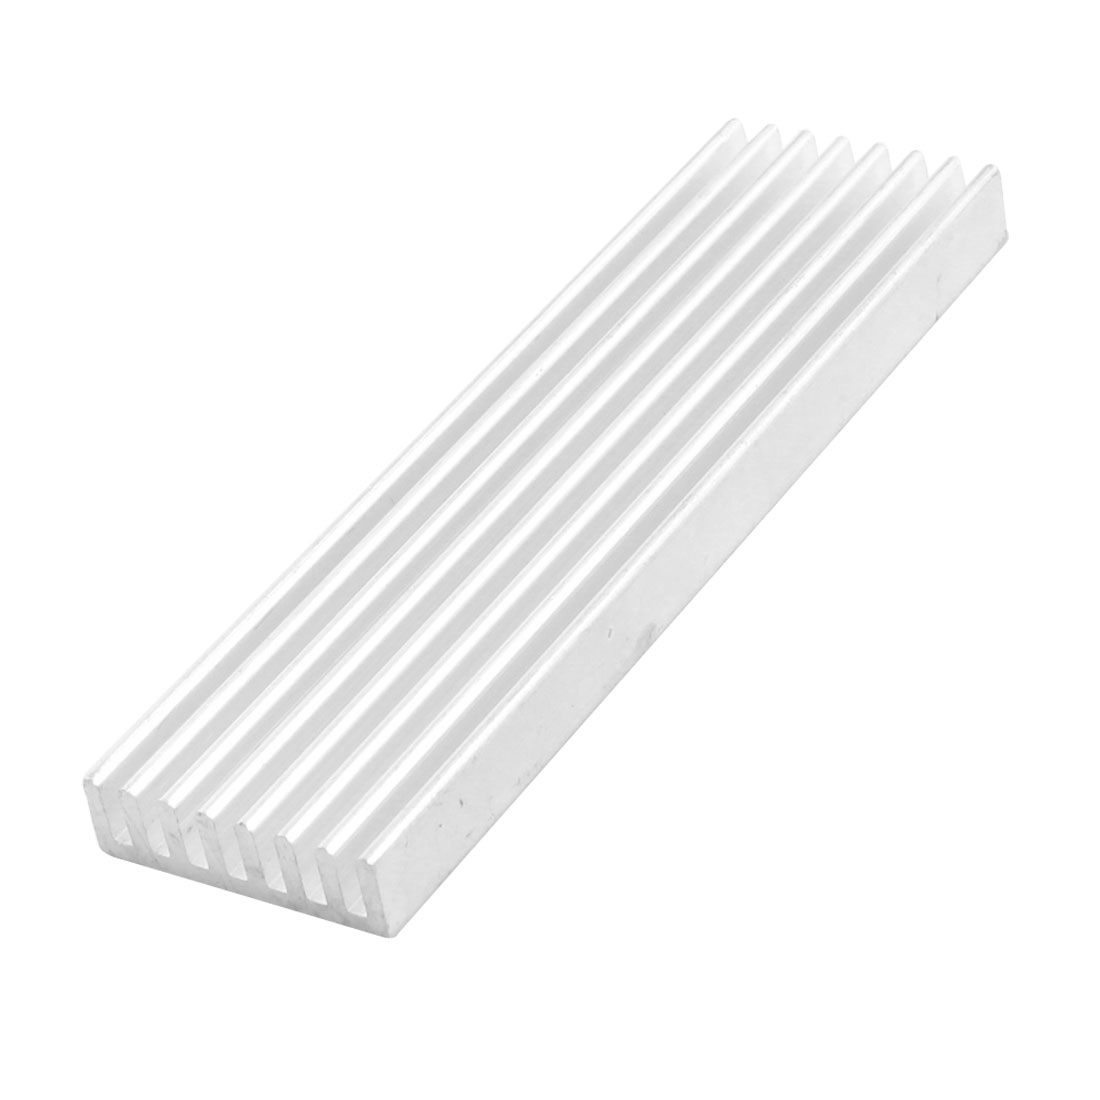 Rectangle Silver Tone Aluminium Heat Sink Diffuse Cooling Fin 100mm x 28mm x 8mm